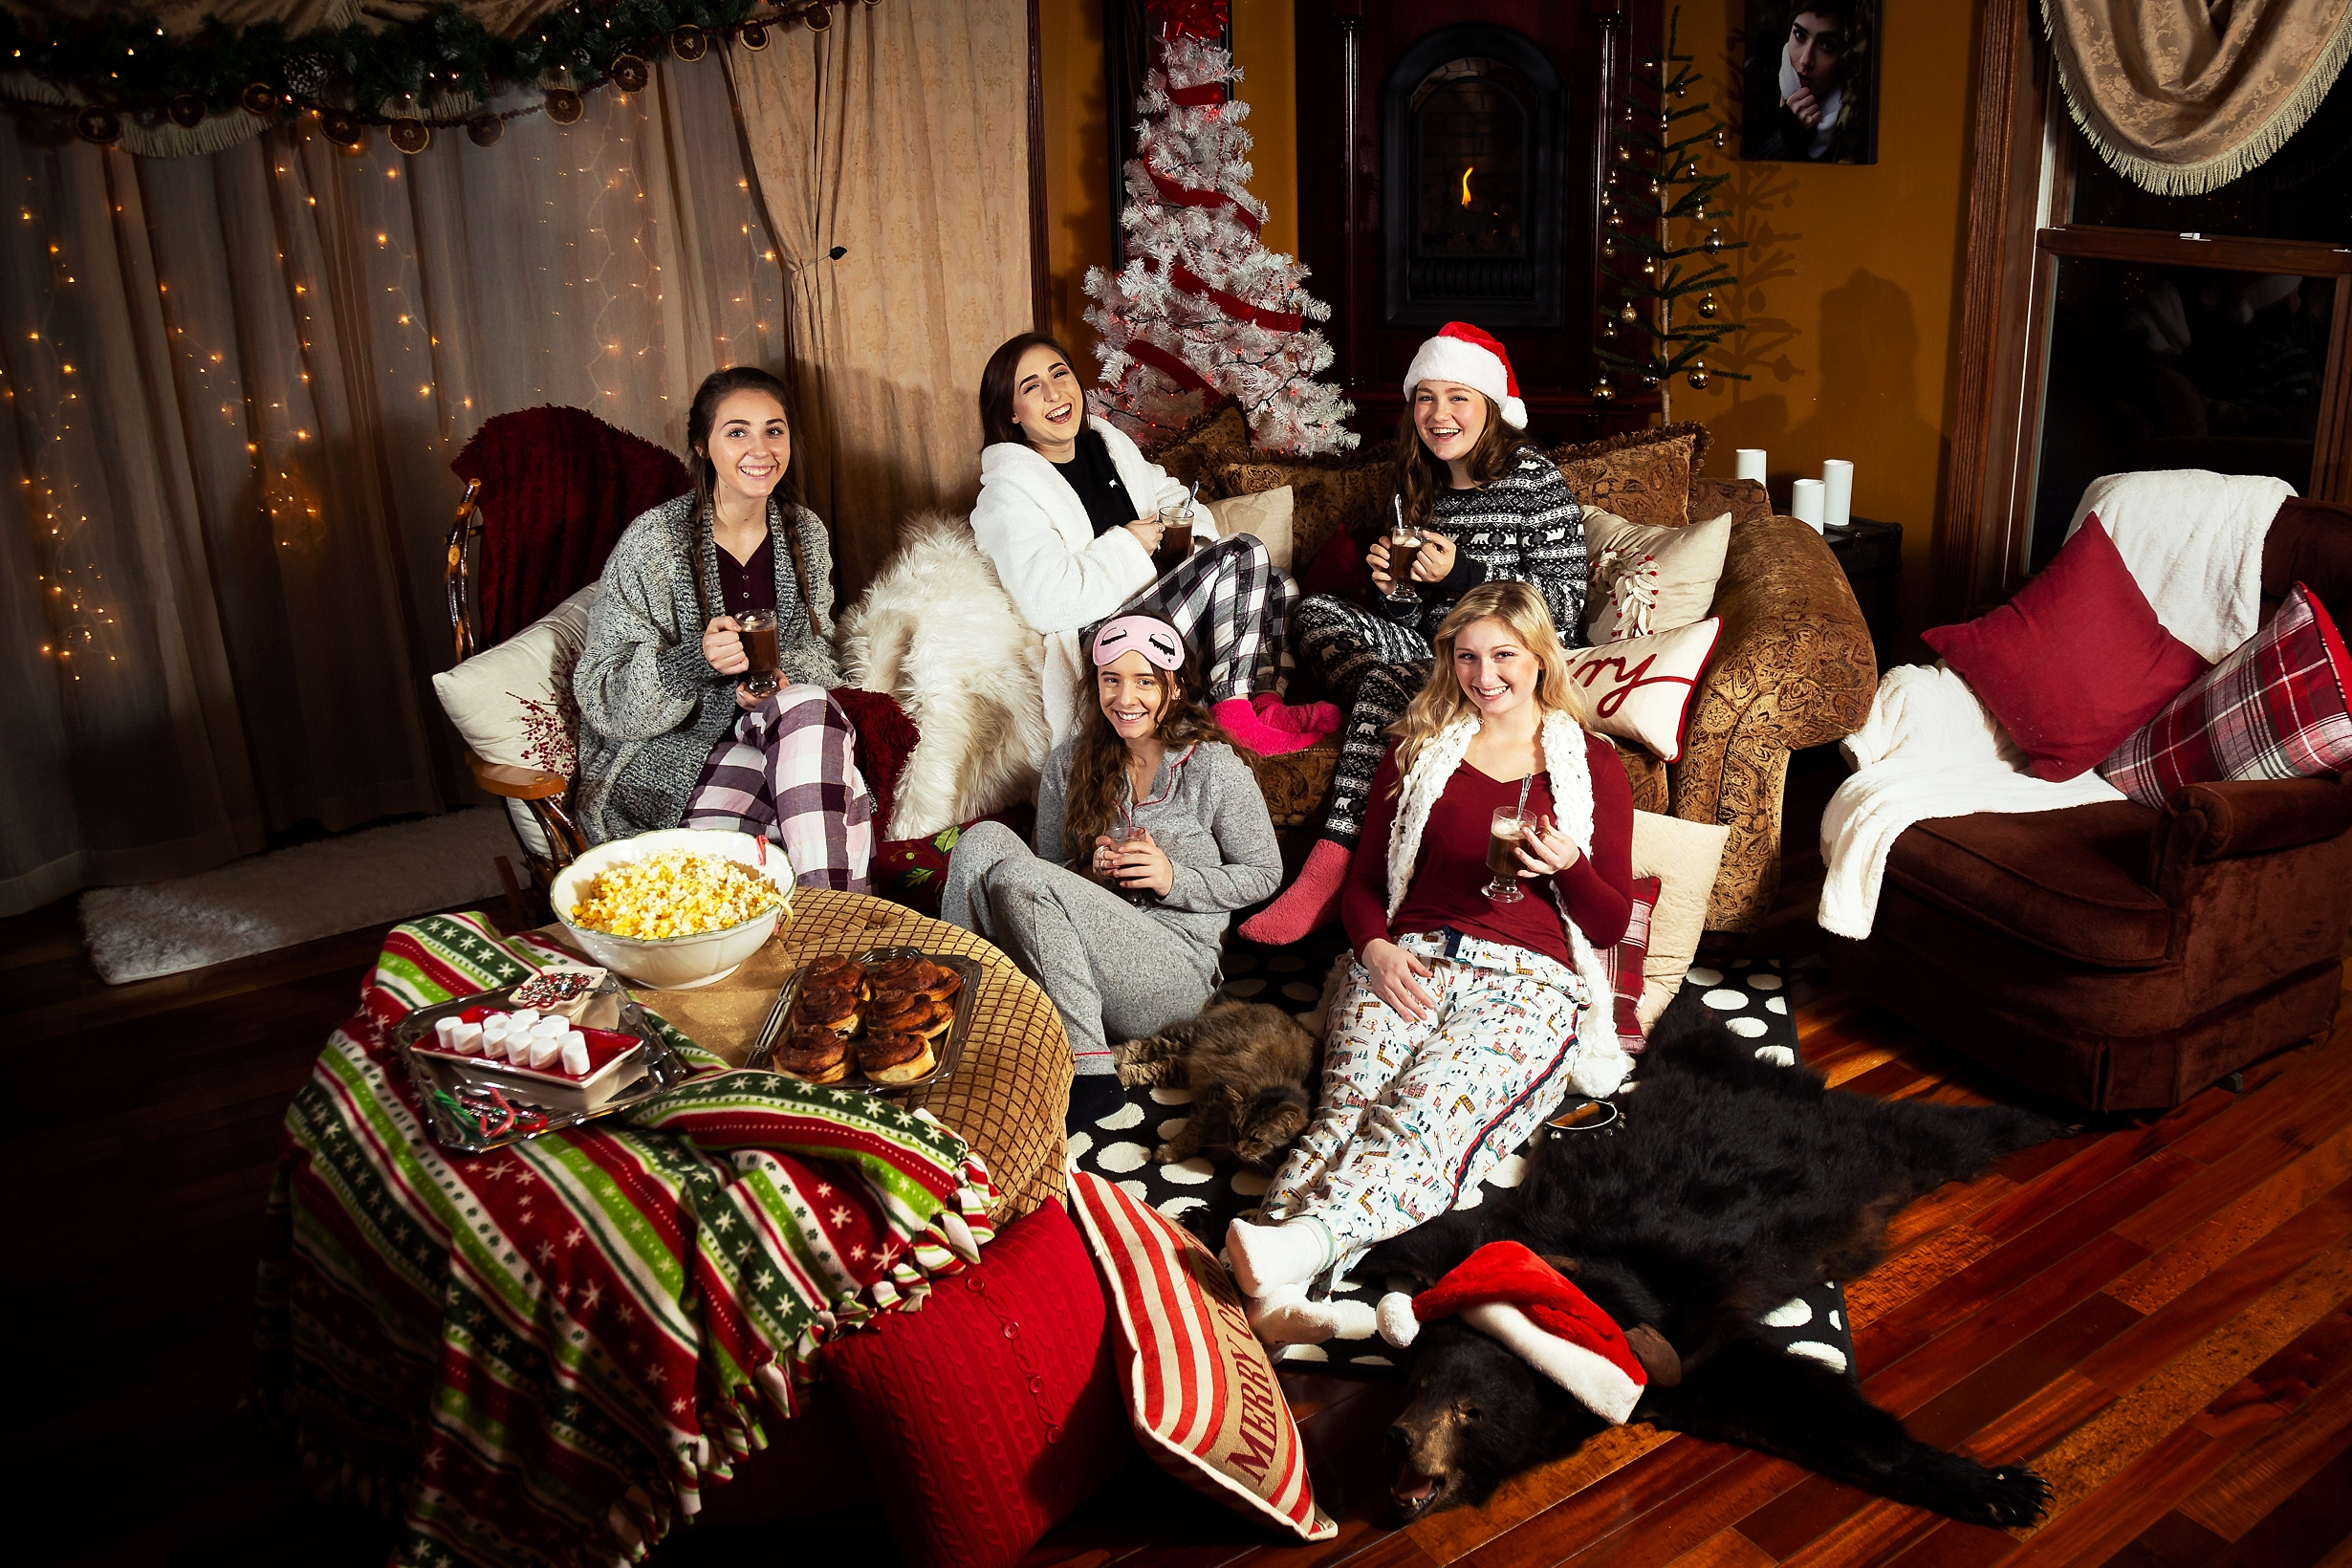 2019 VIP Representatives Christmas Party Group Pajama Photoshoot. Cinnamon Rolls, Popcorn, Hot Cocoa treats